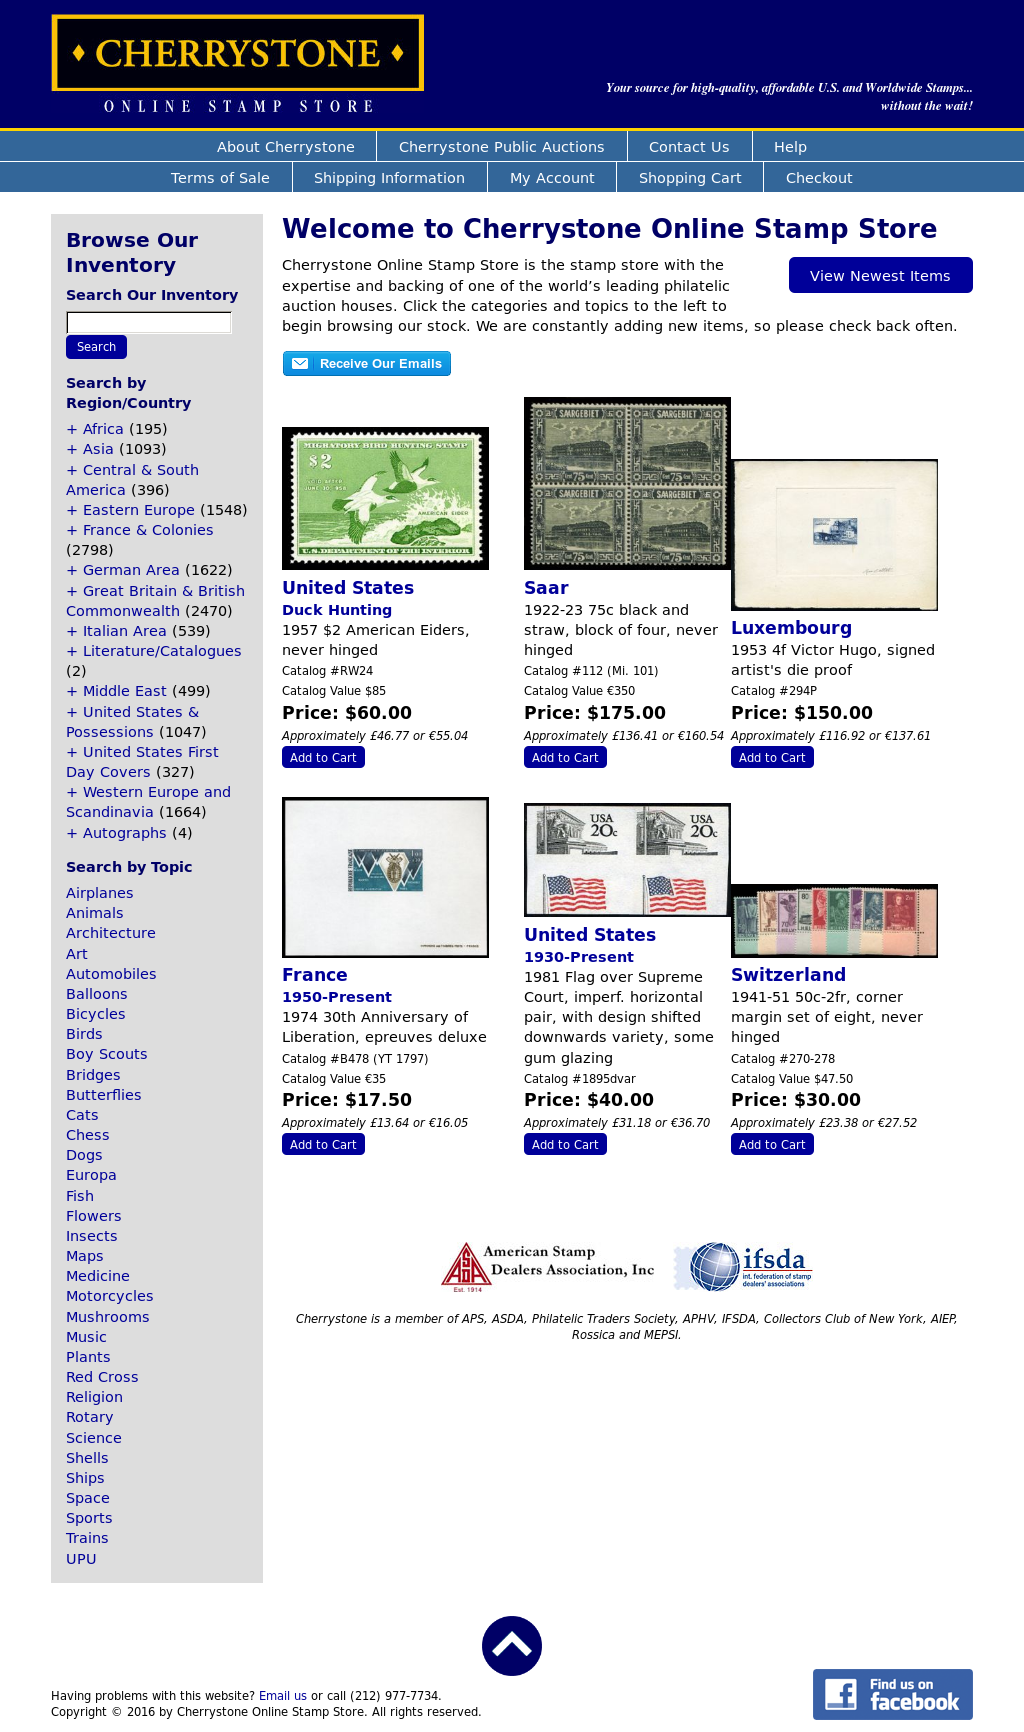 Cherrystone Online Stamp Store Competitors, Revenue and Employees